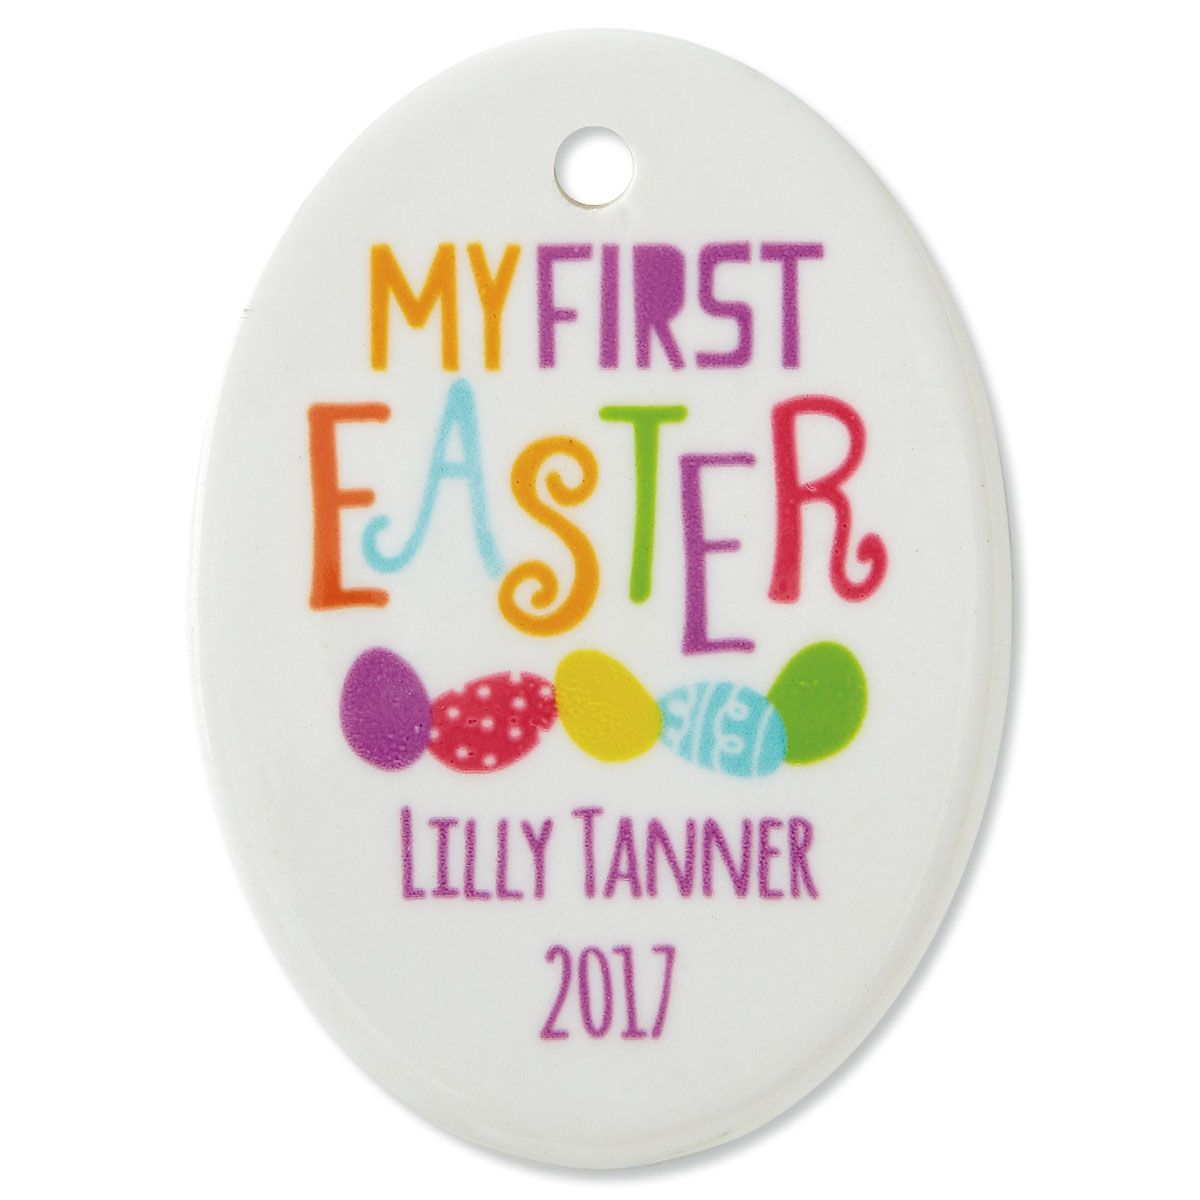 Personalized Baby's First Easter Ornament